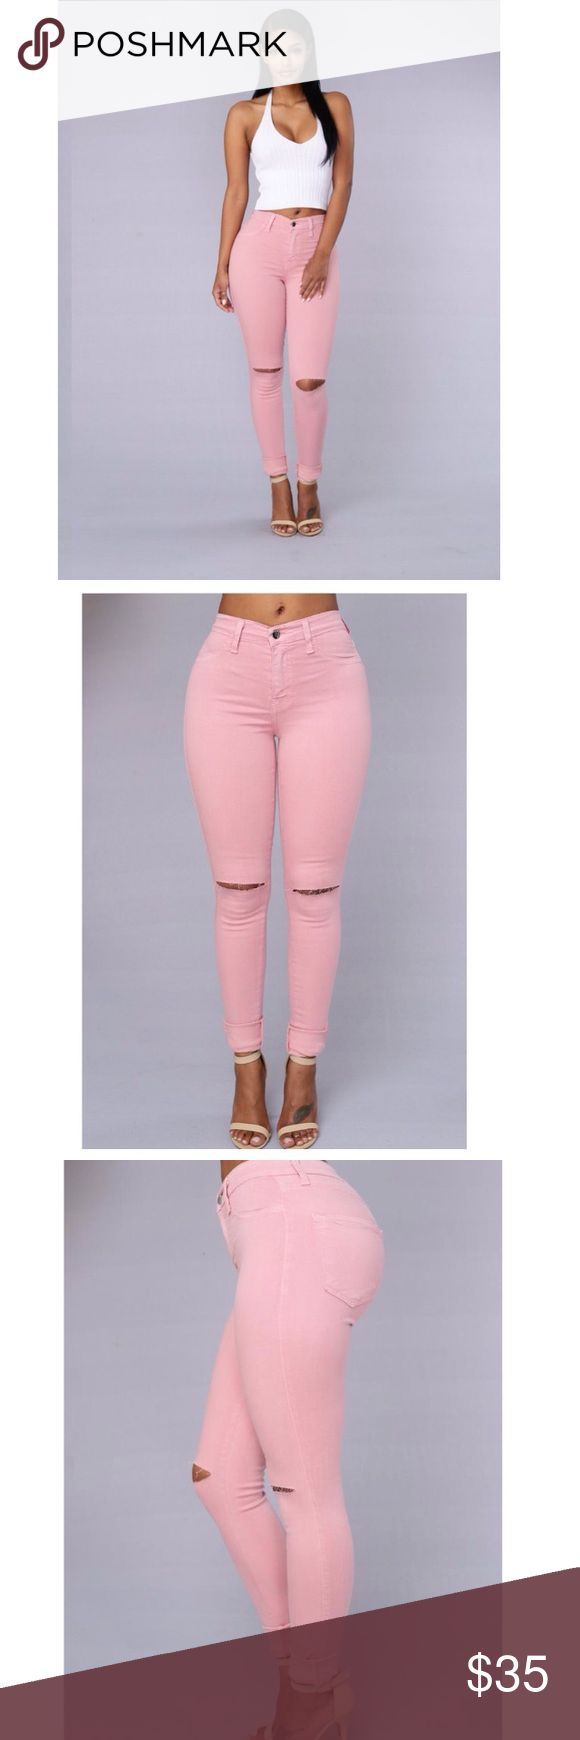 Stretch jean 🔴SOLD🔴 Stretch jeans in rose pink  💗💗High waisted with slit in the knee brand new ordered online too small Jeans Skinny